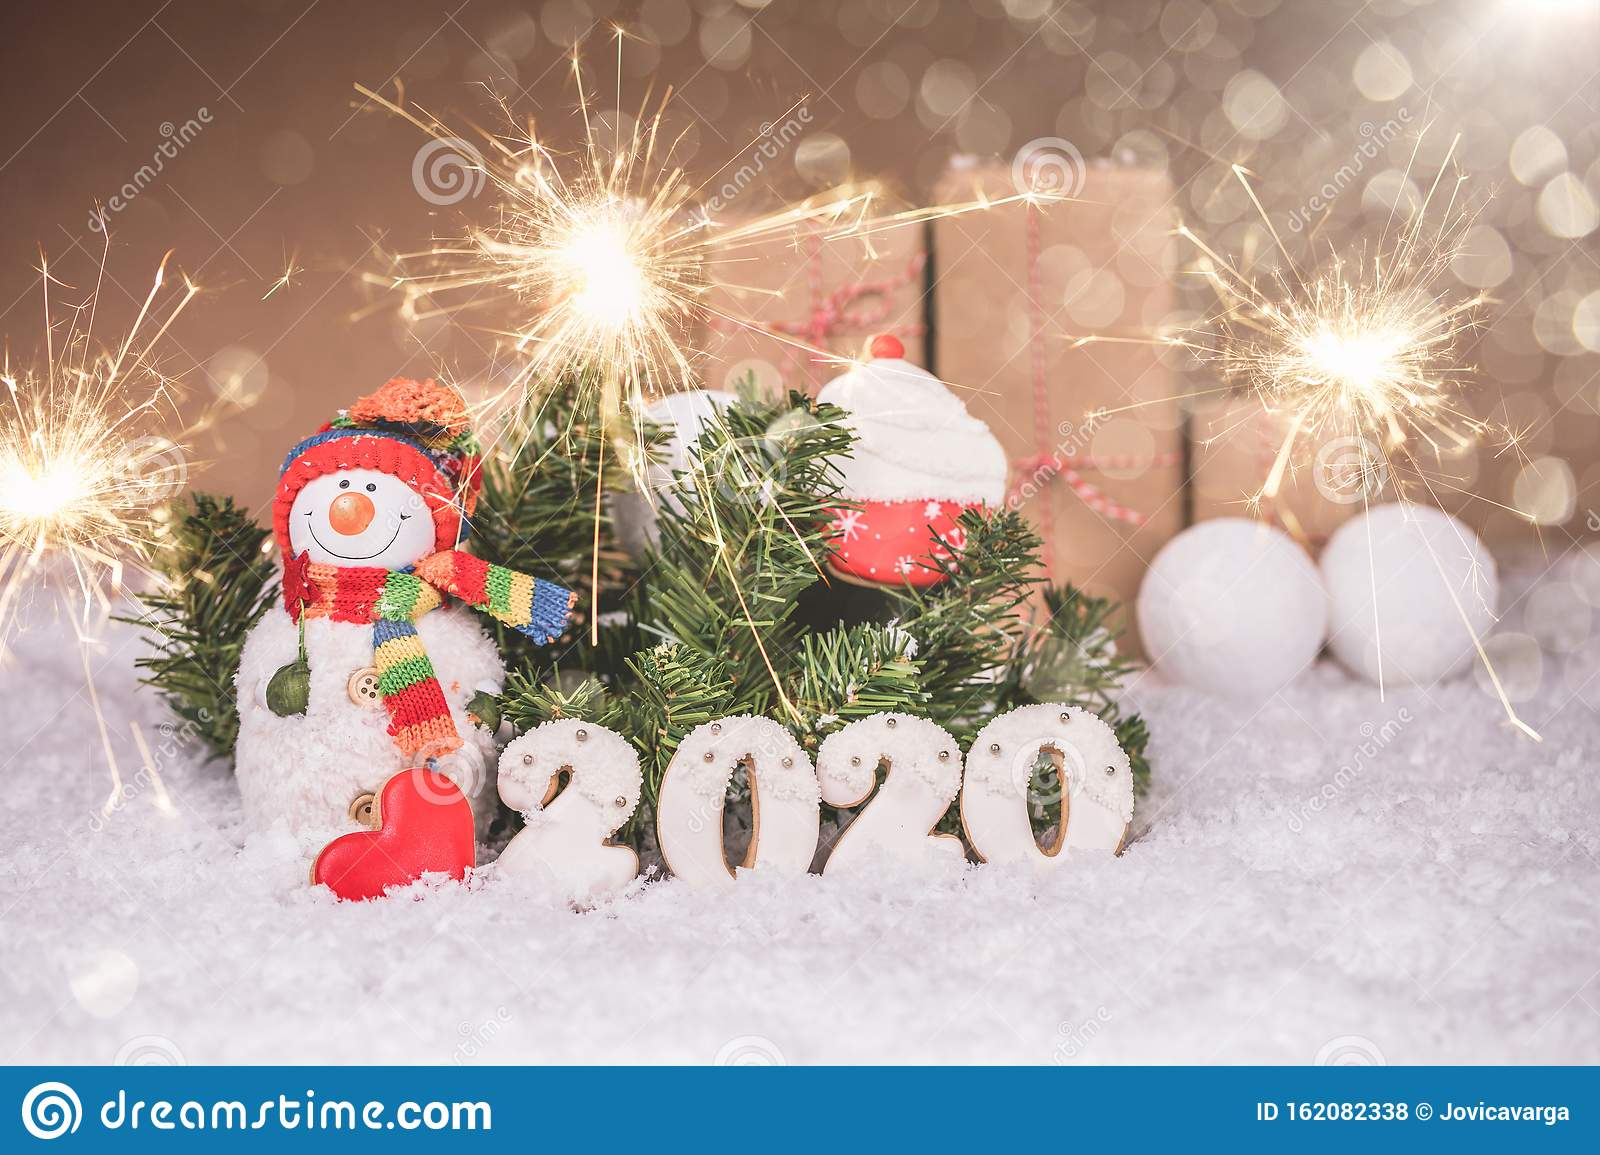 Snowman With Gingerbread And Christmas Decorations, Happy ...